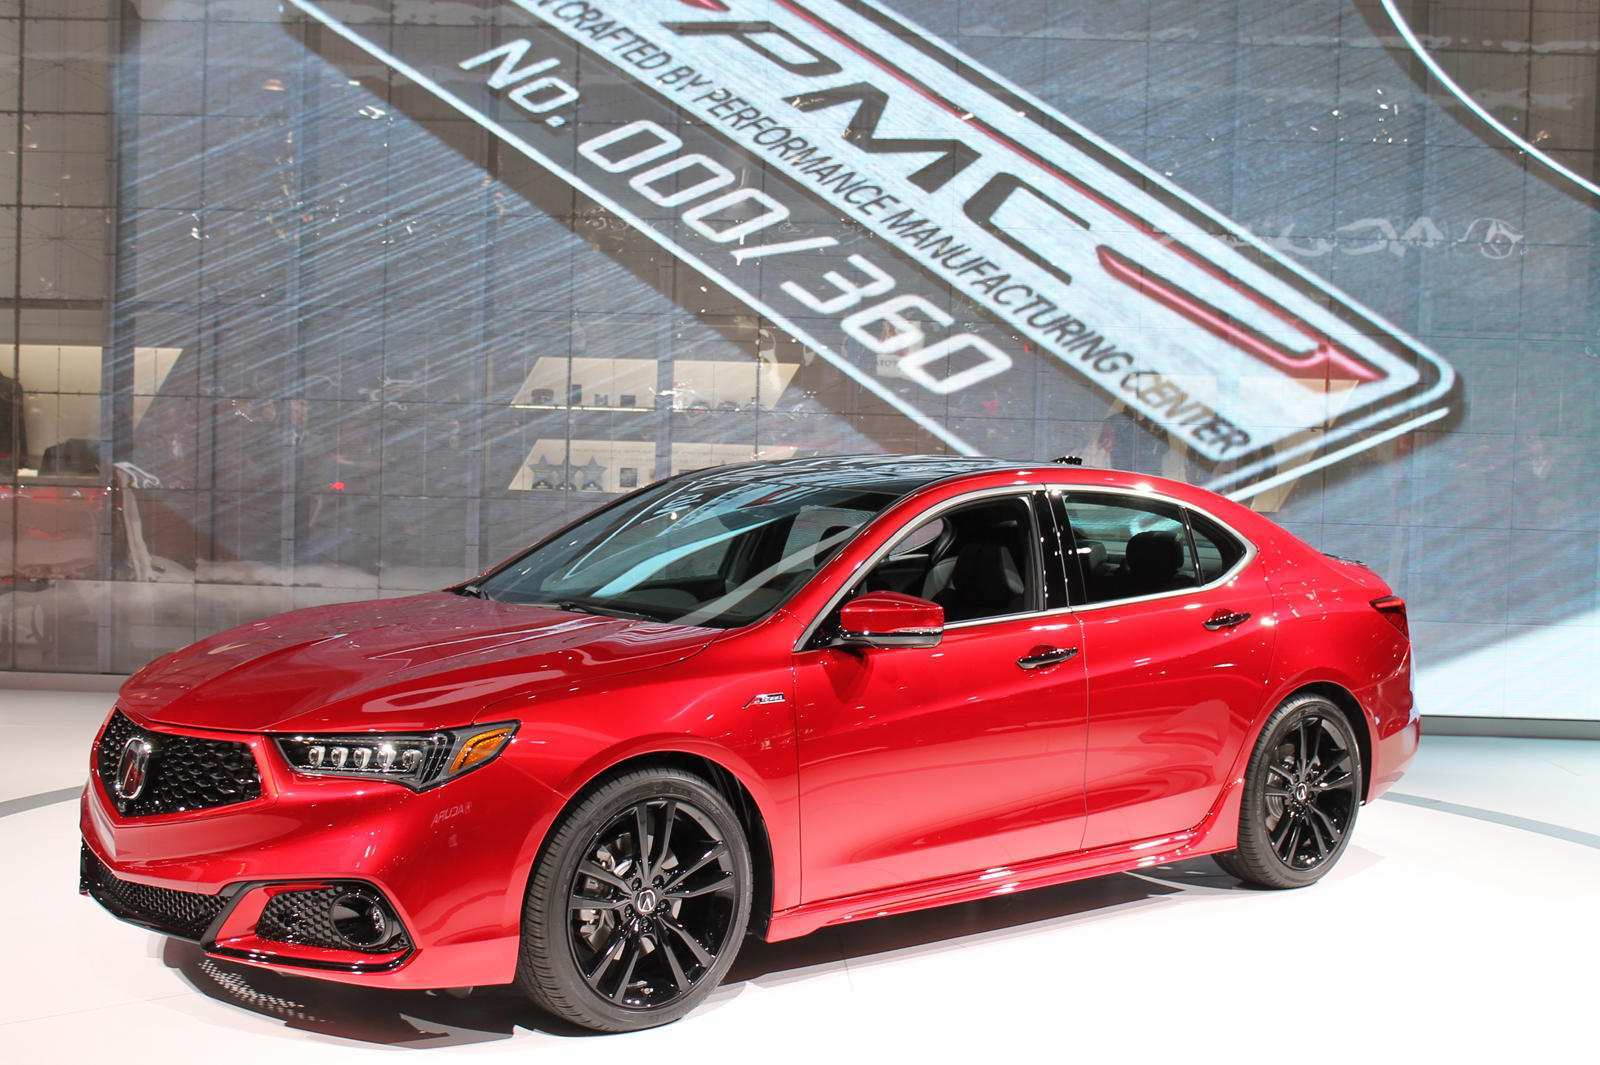 52 Great Acura Tlx 2020 Price New Concept with Acura Tlx 2020 Price